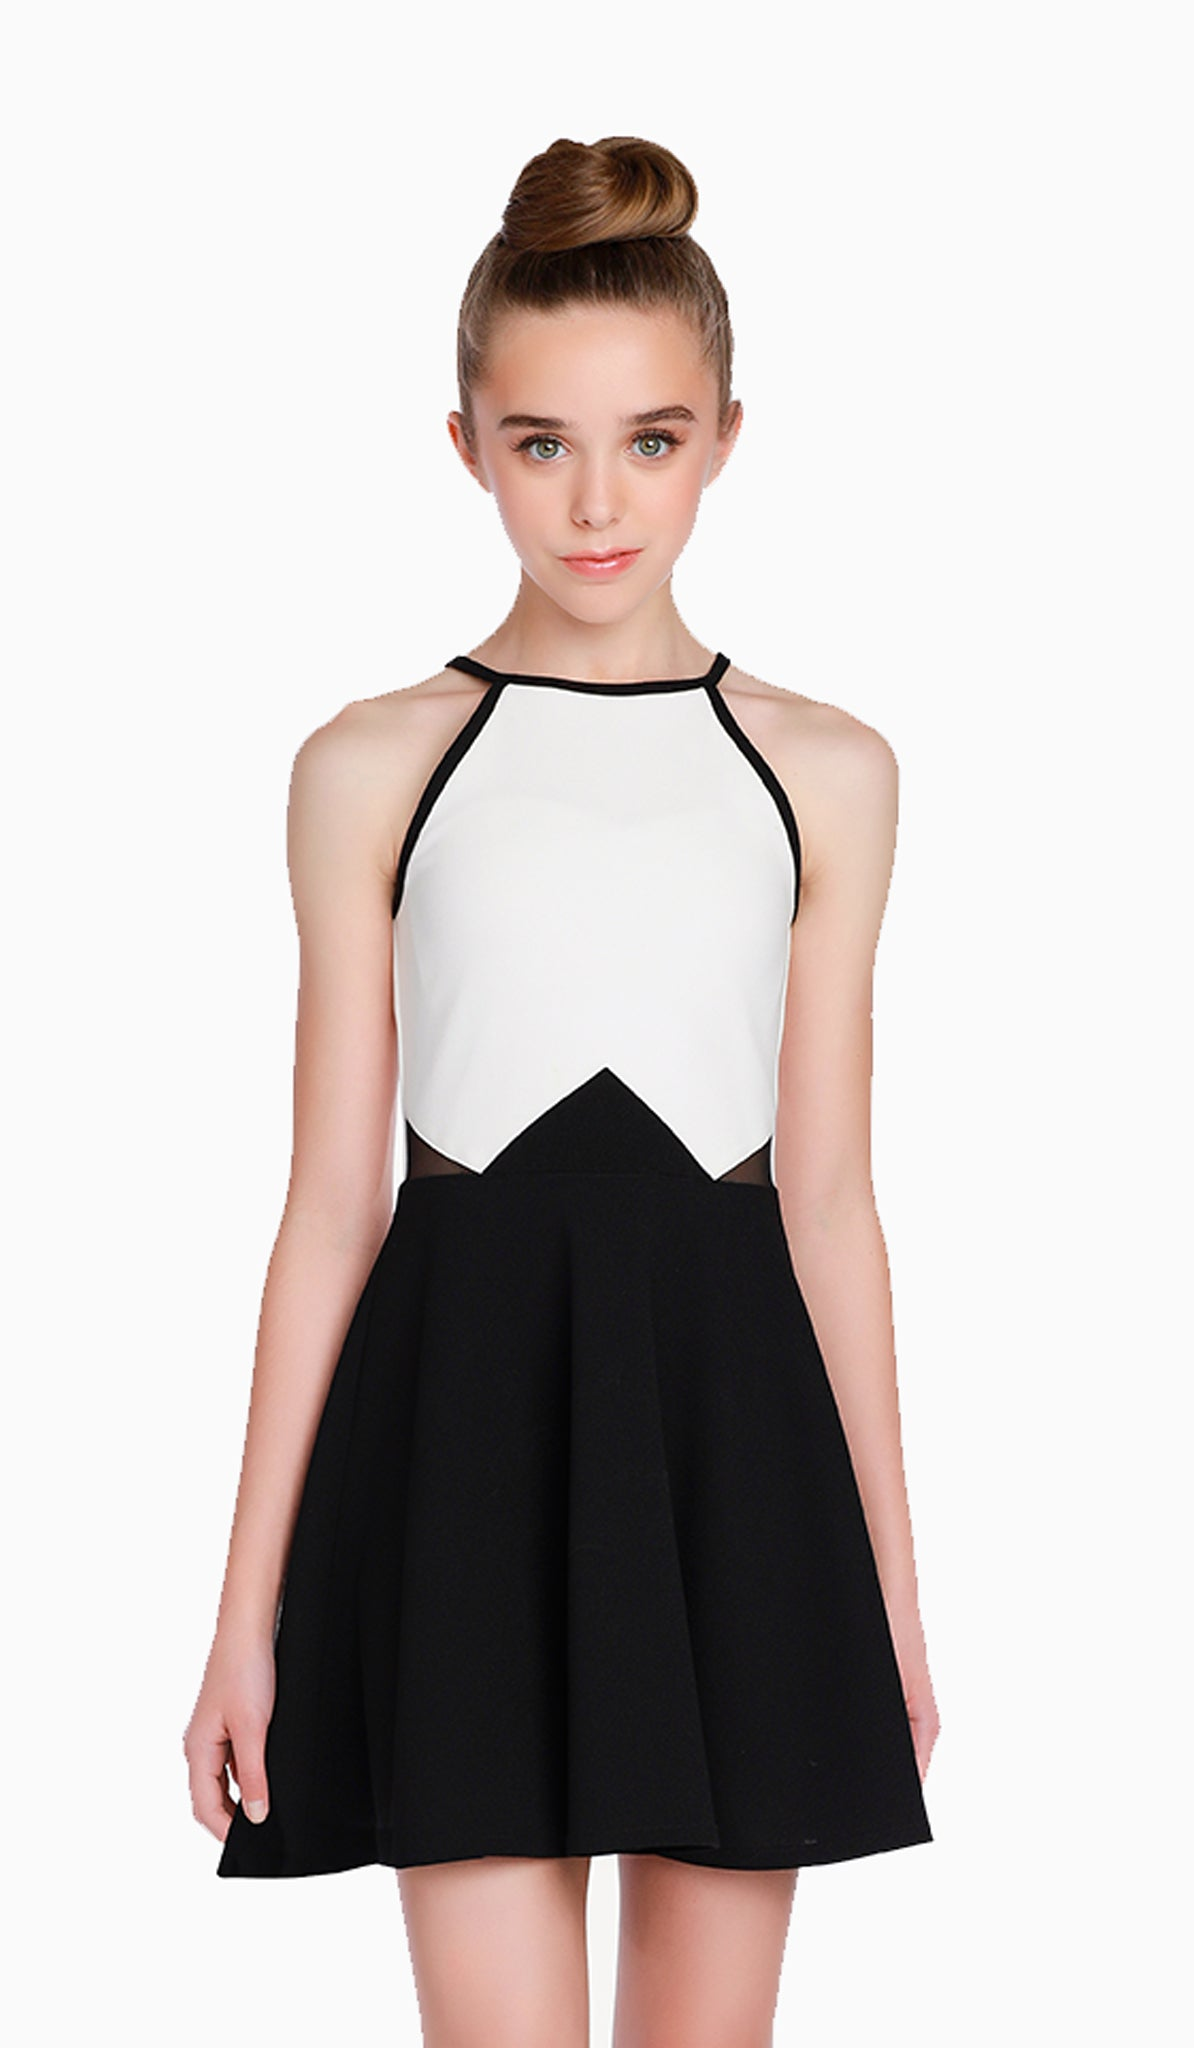 The Sally Miller Anissa Dress | Ivory and black color block stretch crepe georgette fit and flare dress with waist mesh inserts and keyhole at back opening  | Luxury tween dresses & juniors dresses for all occasions and events